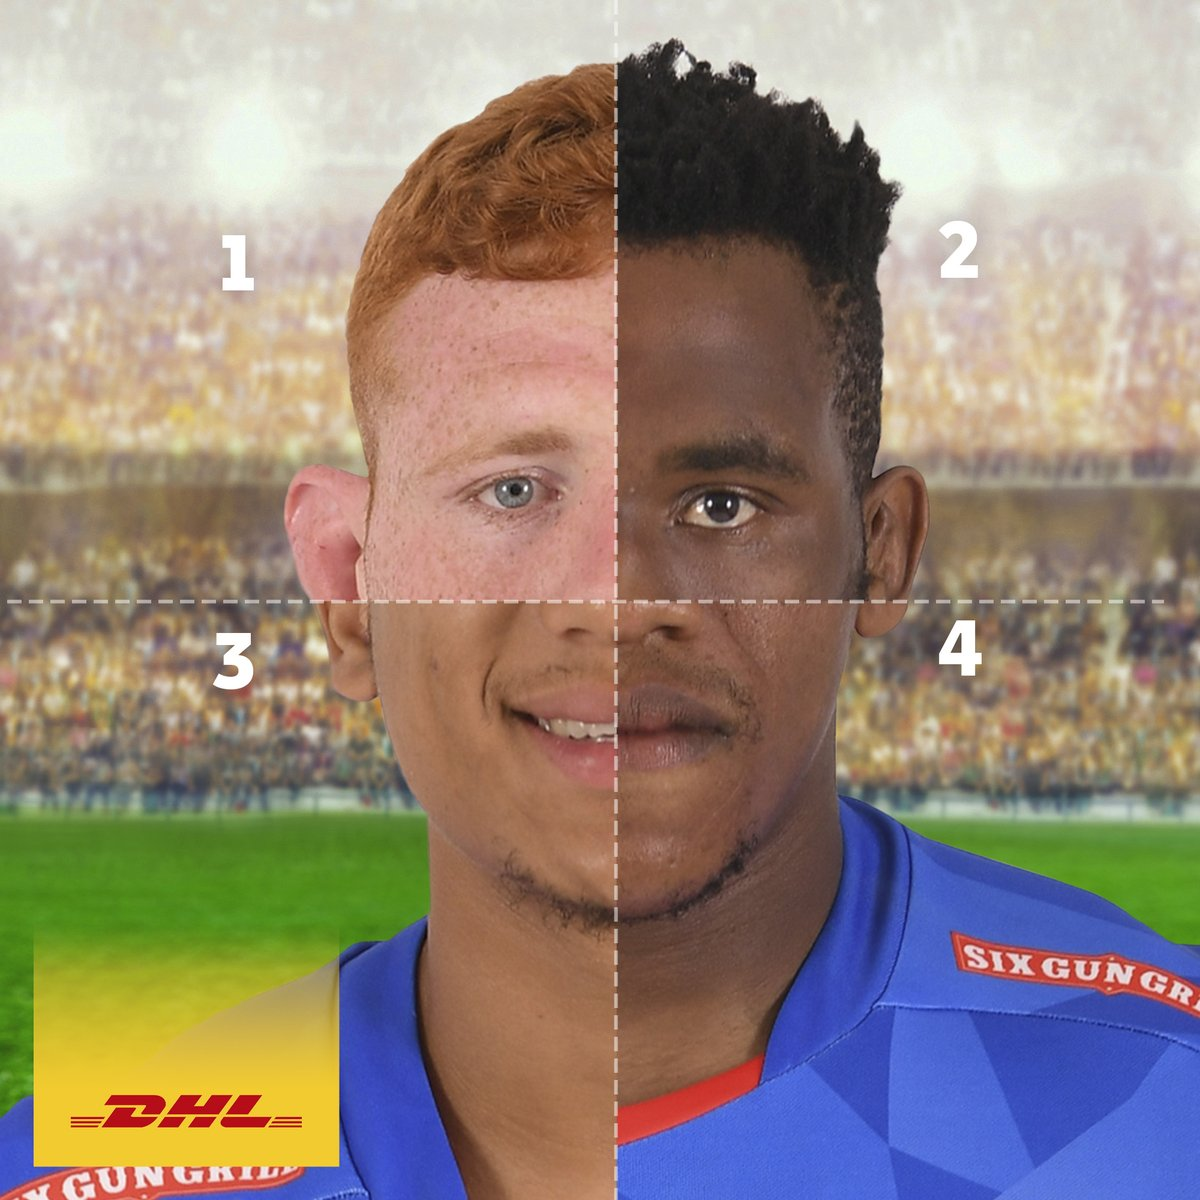 Which four @THESTORMERS players make up this handsome individual?  #DHLRugby #IAmAStormer #DHLDelivers https://t.co/tGH2BxyoON